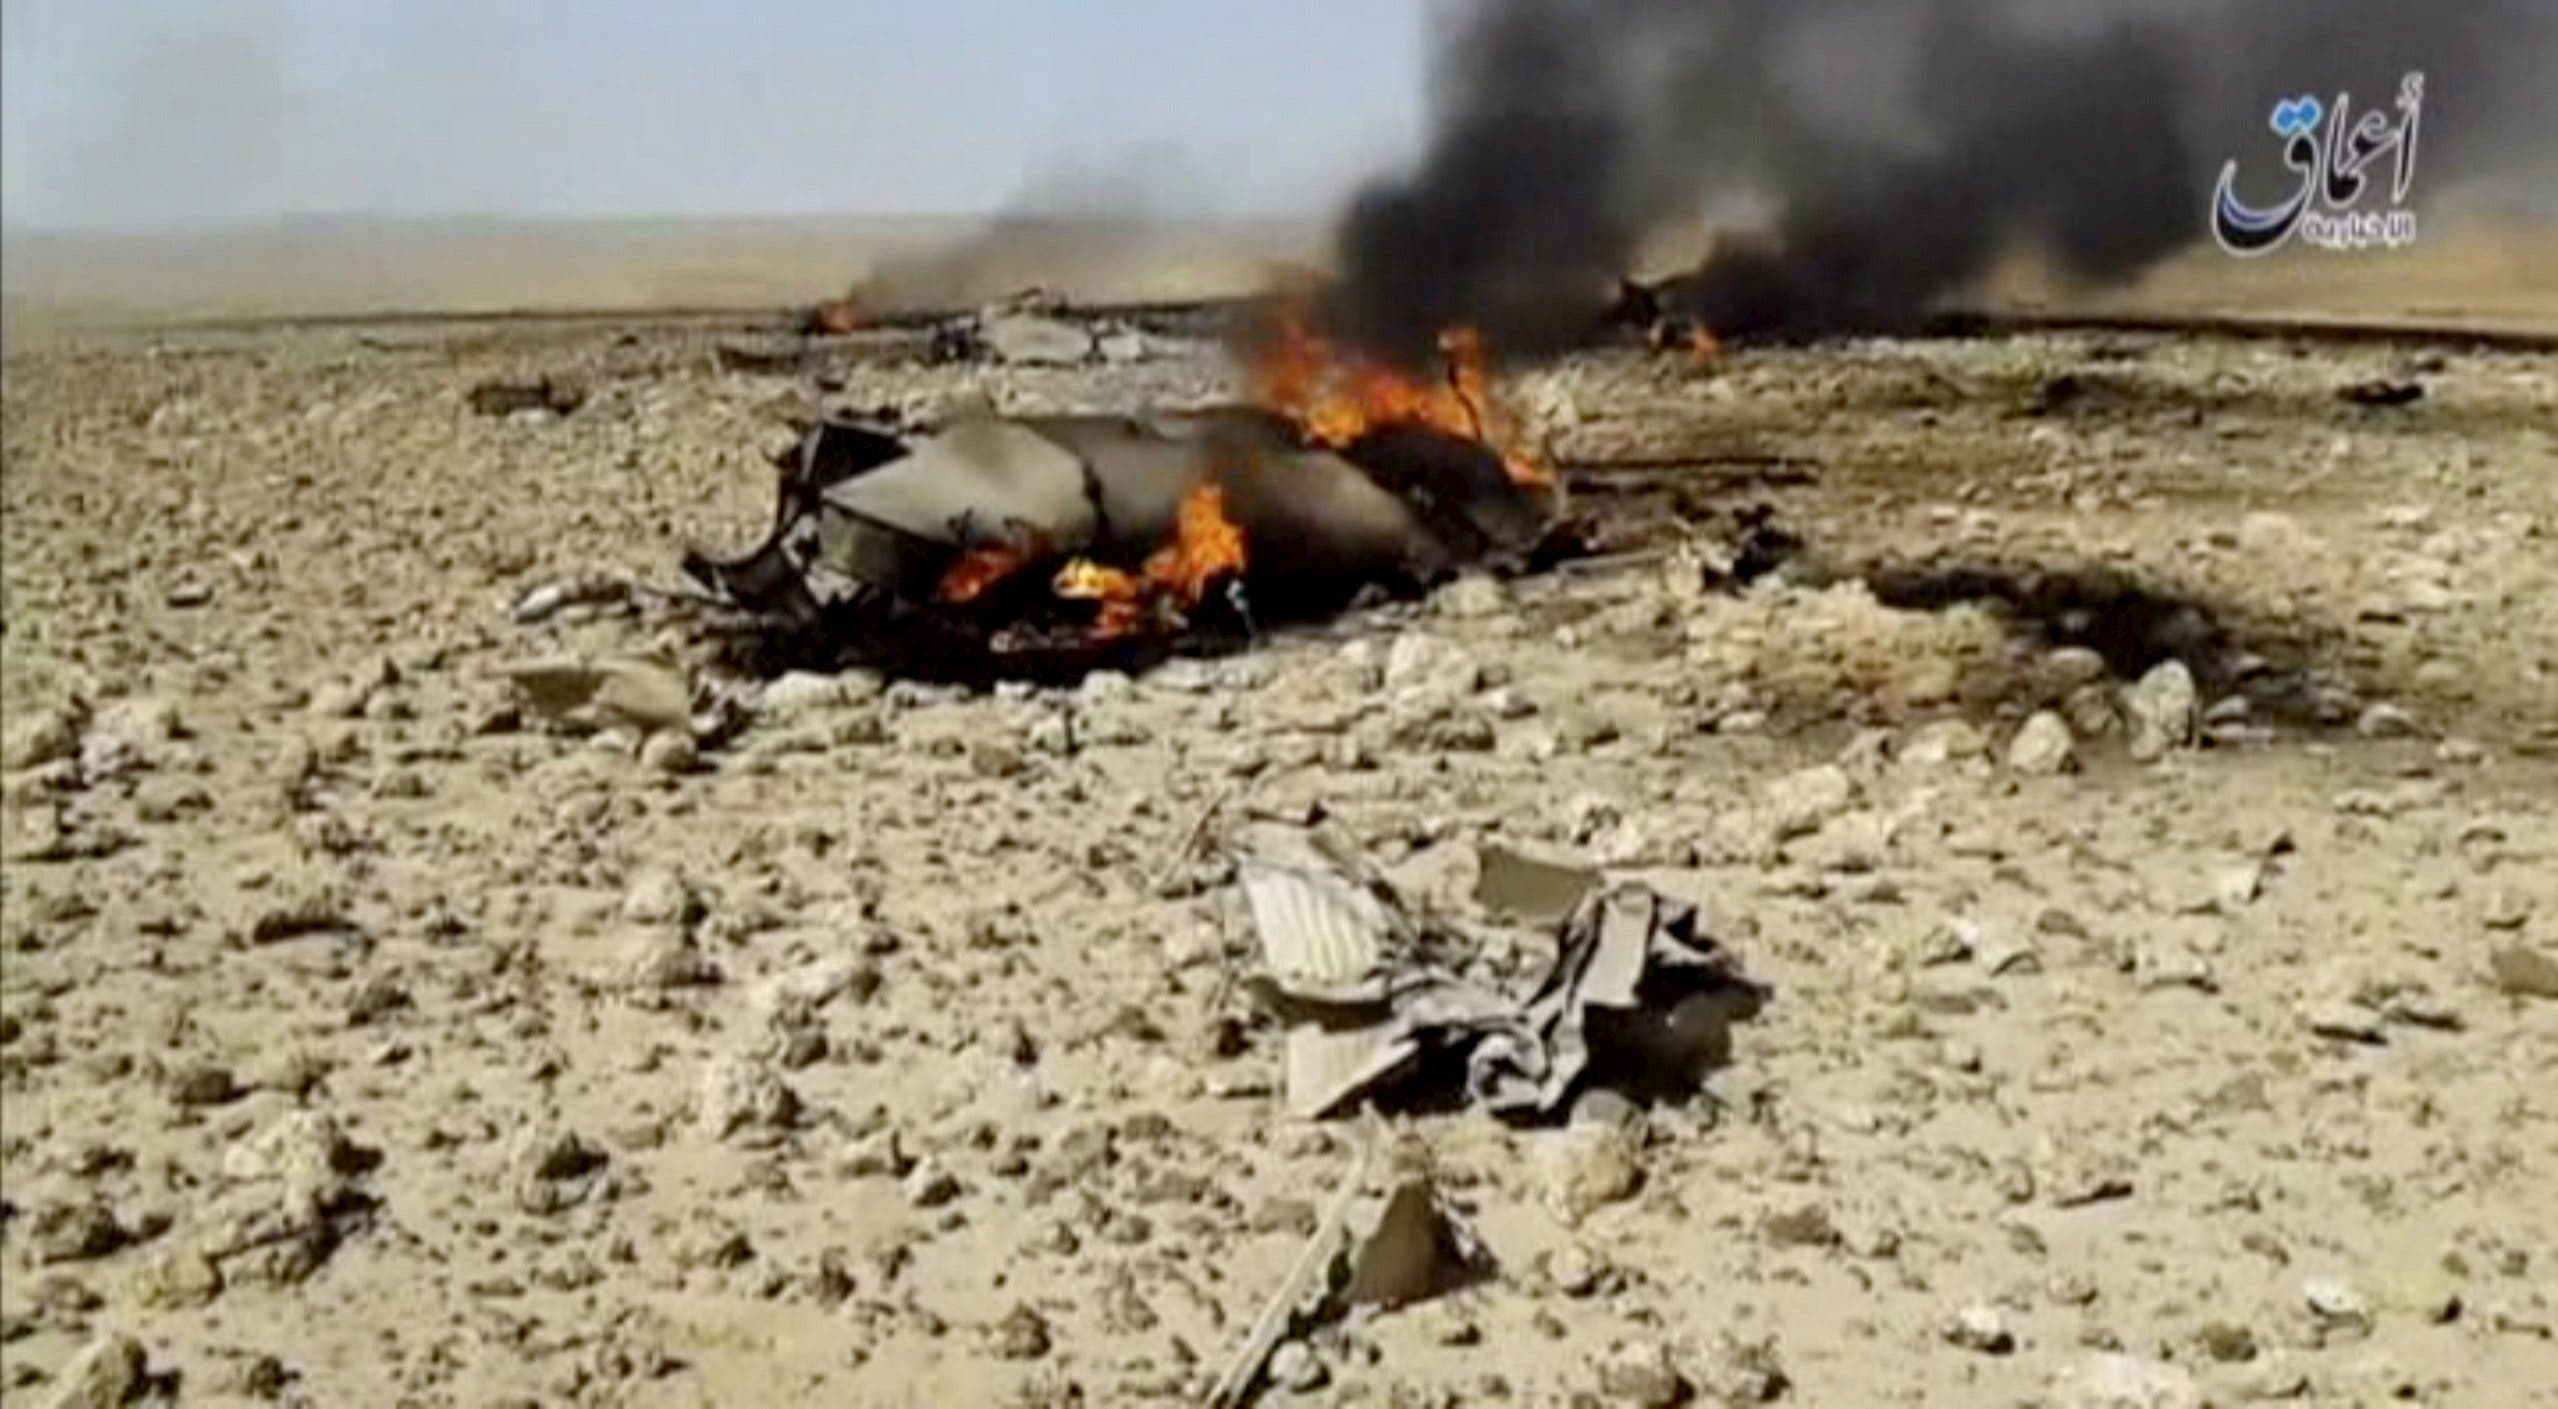 A view of the burning wreckage of a plane that crashed southeast of Damascus, Syria in this still image taken from video said to be shot April 22, 2016. (Reuters)